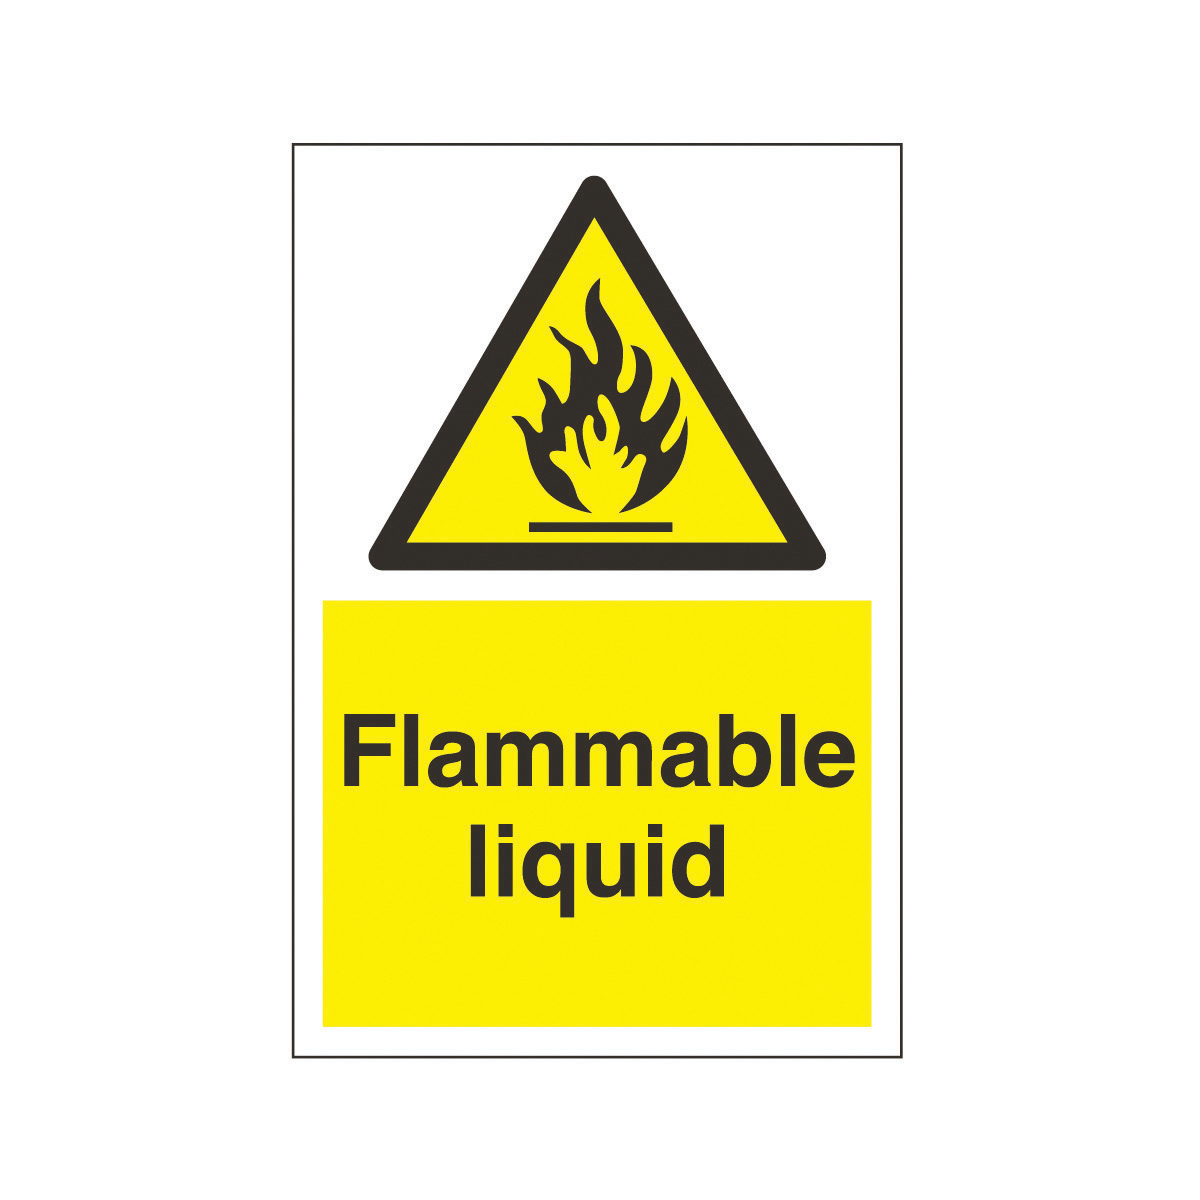 Flammable Liquid Safety Sign Hazard Amp Warning Sign From